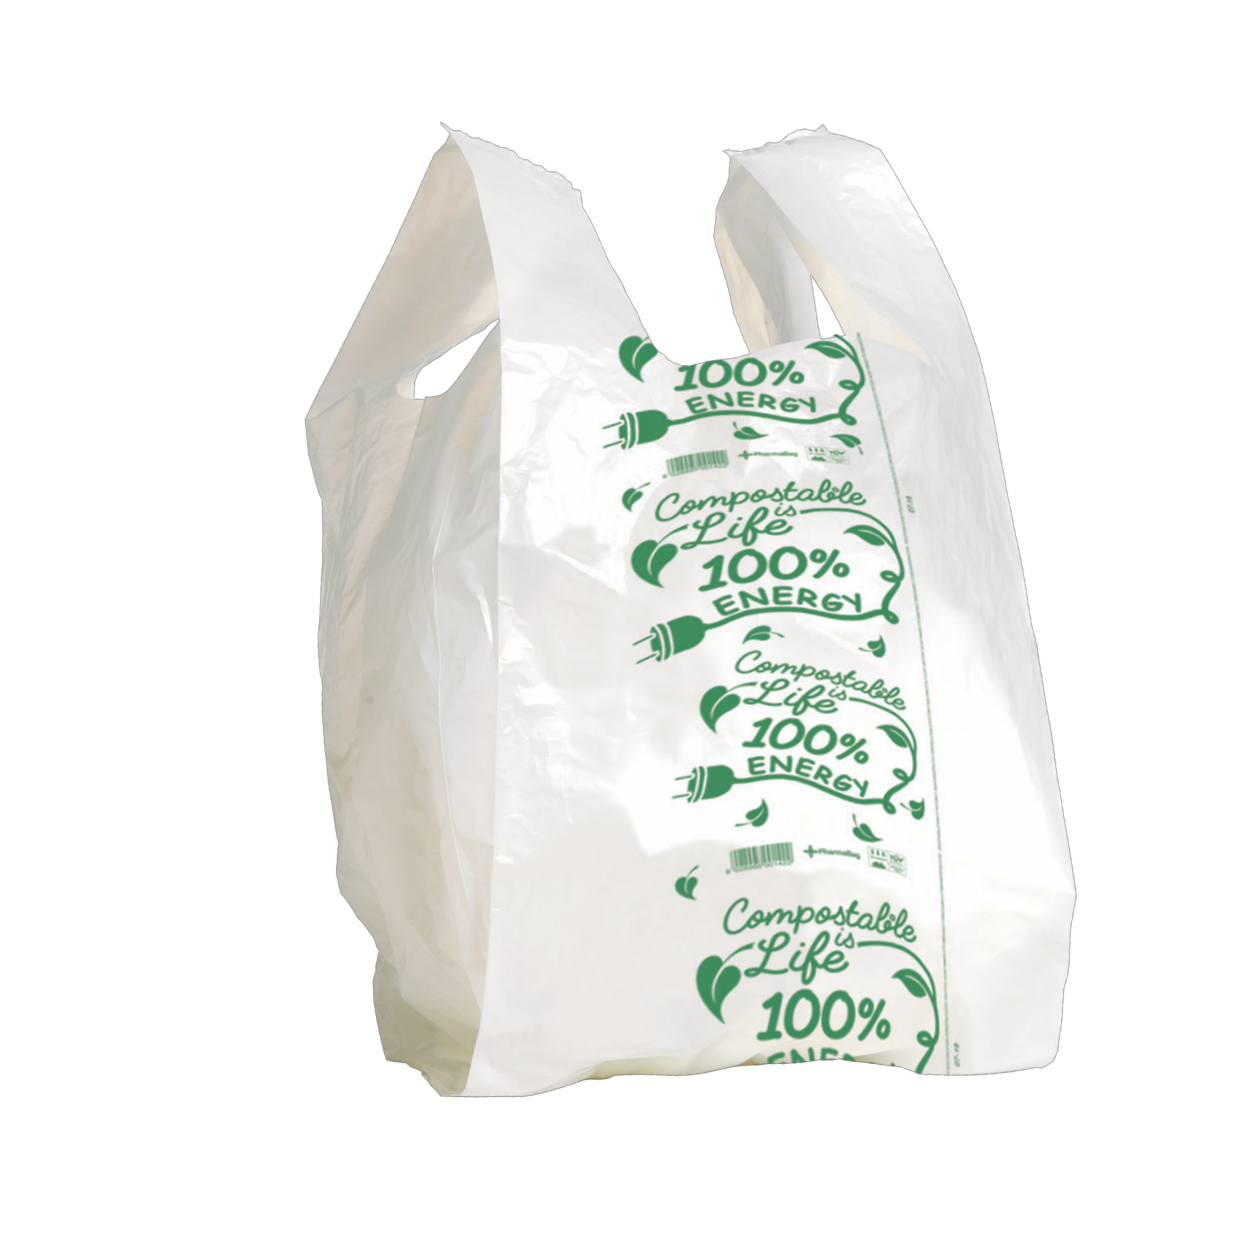 SUPER MAXI Shopper bianco compostabile formato shopper: 35+9+9x60 cm.